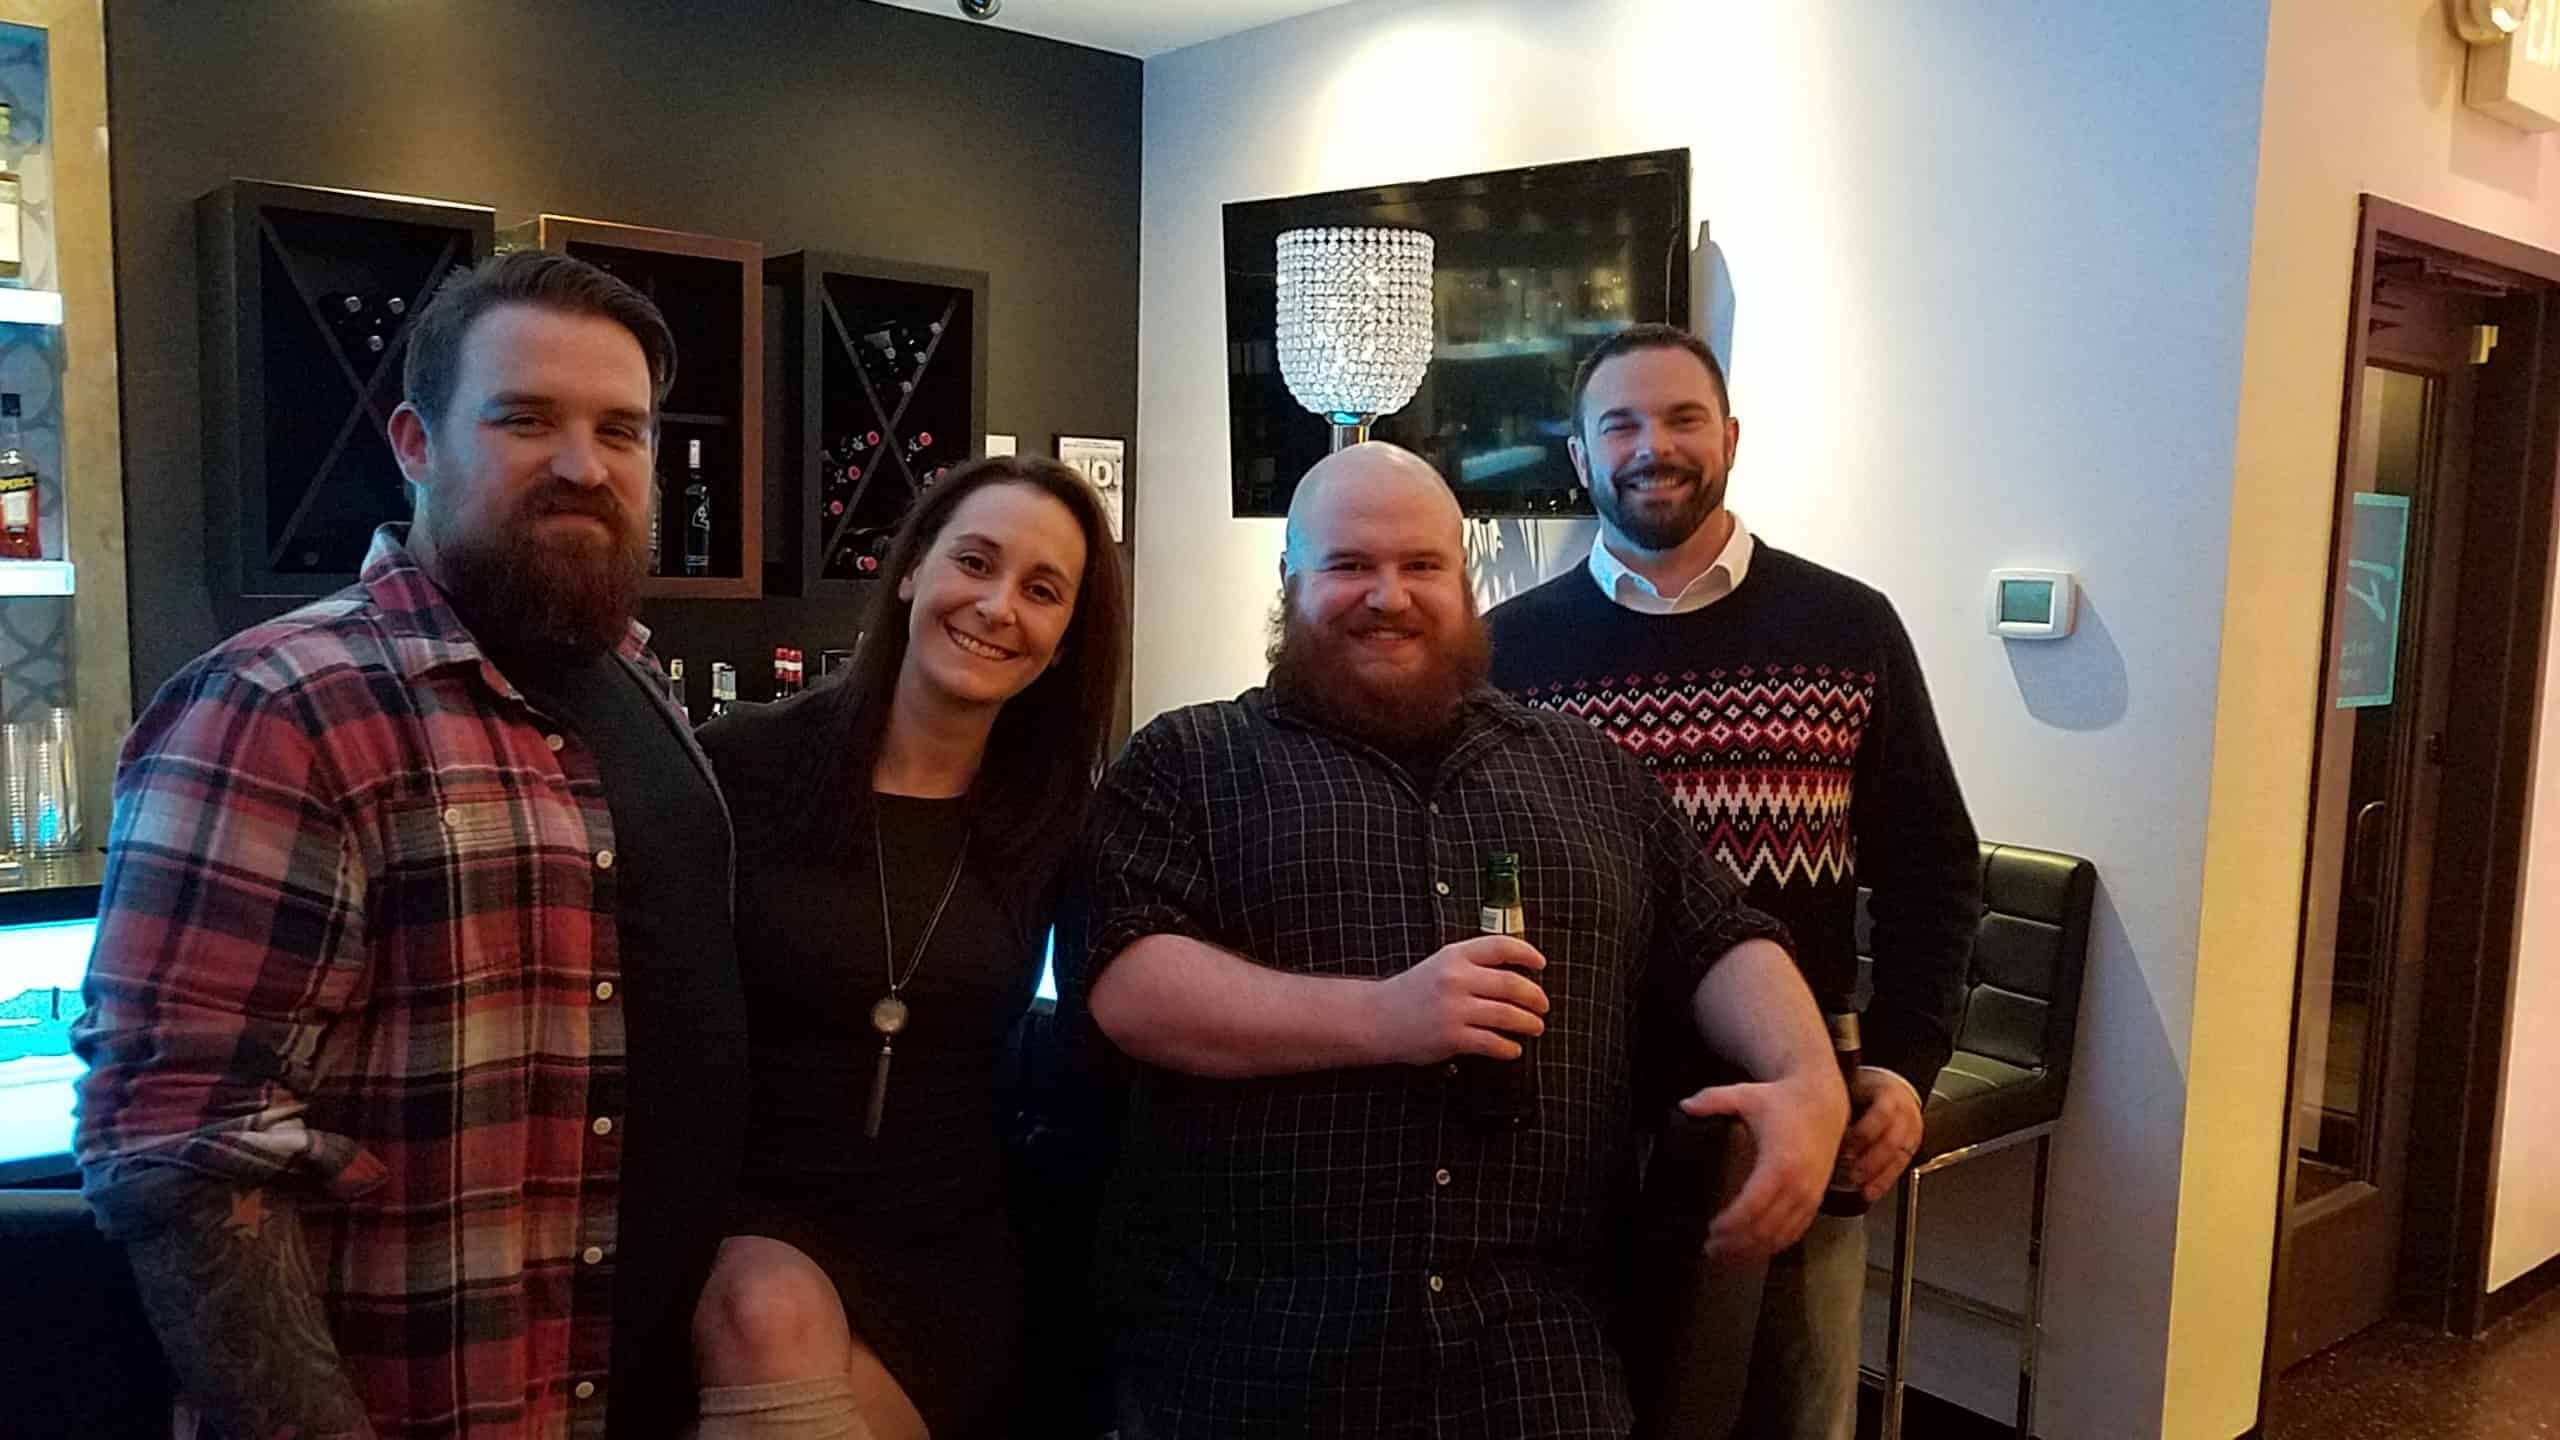 Web team Christmas photo GPM 2019 - Golden Proportions Marketing